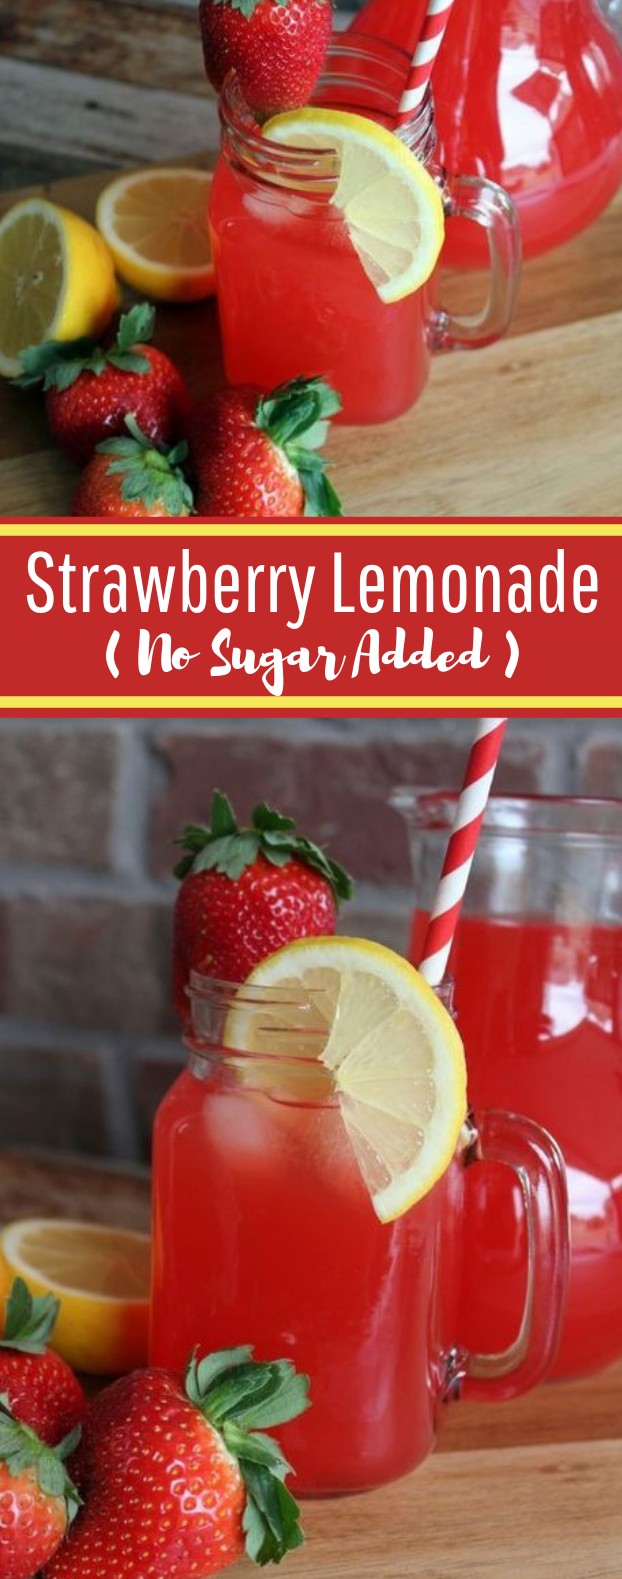 Strawberry Lemonade with No Sugar Added #healthy #summerdrink